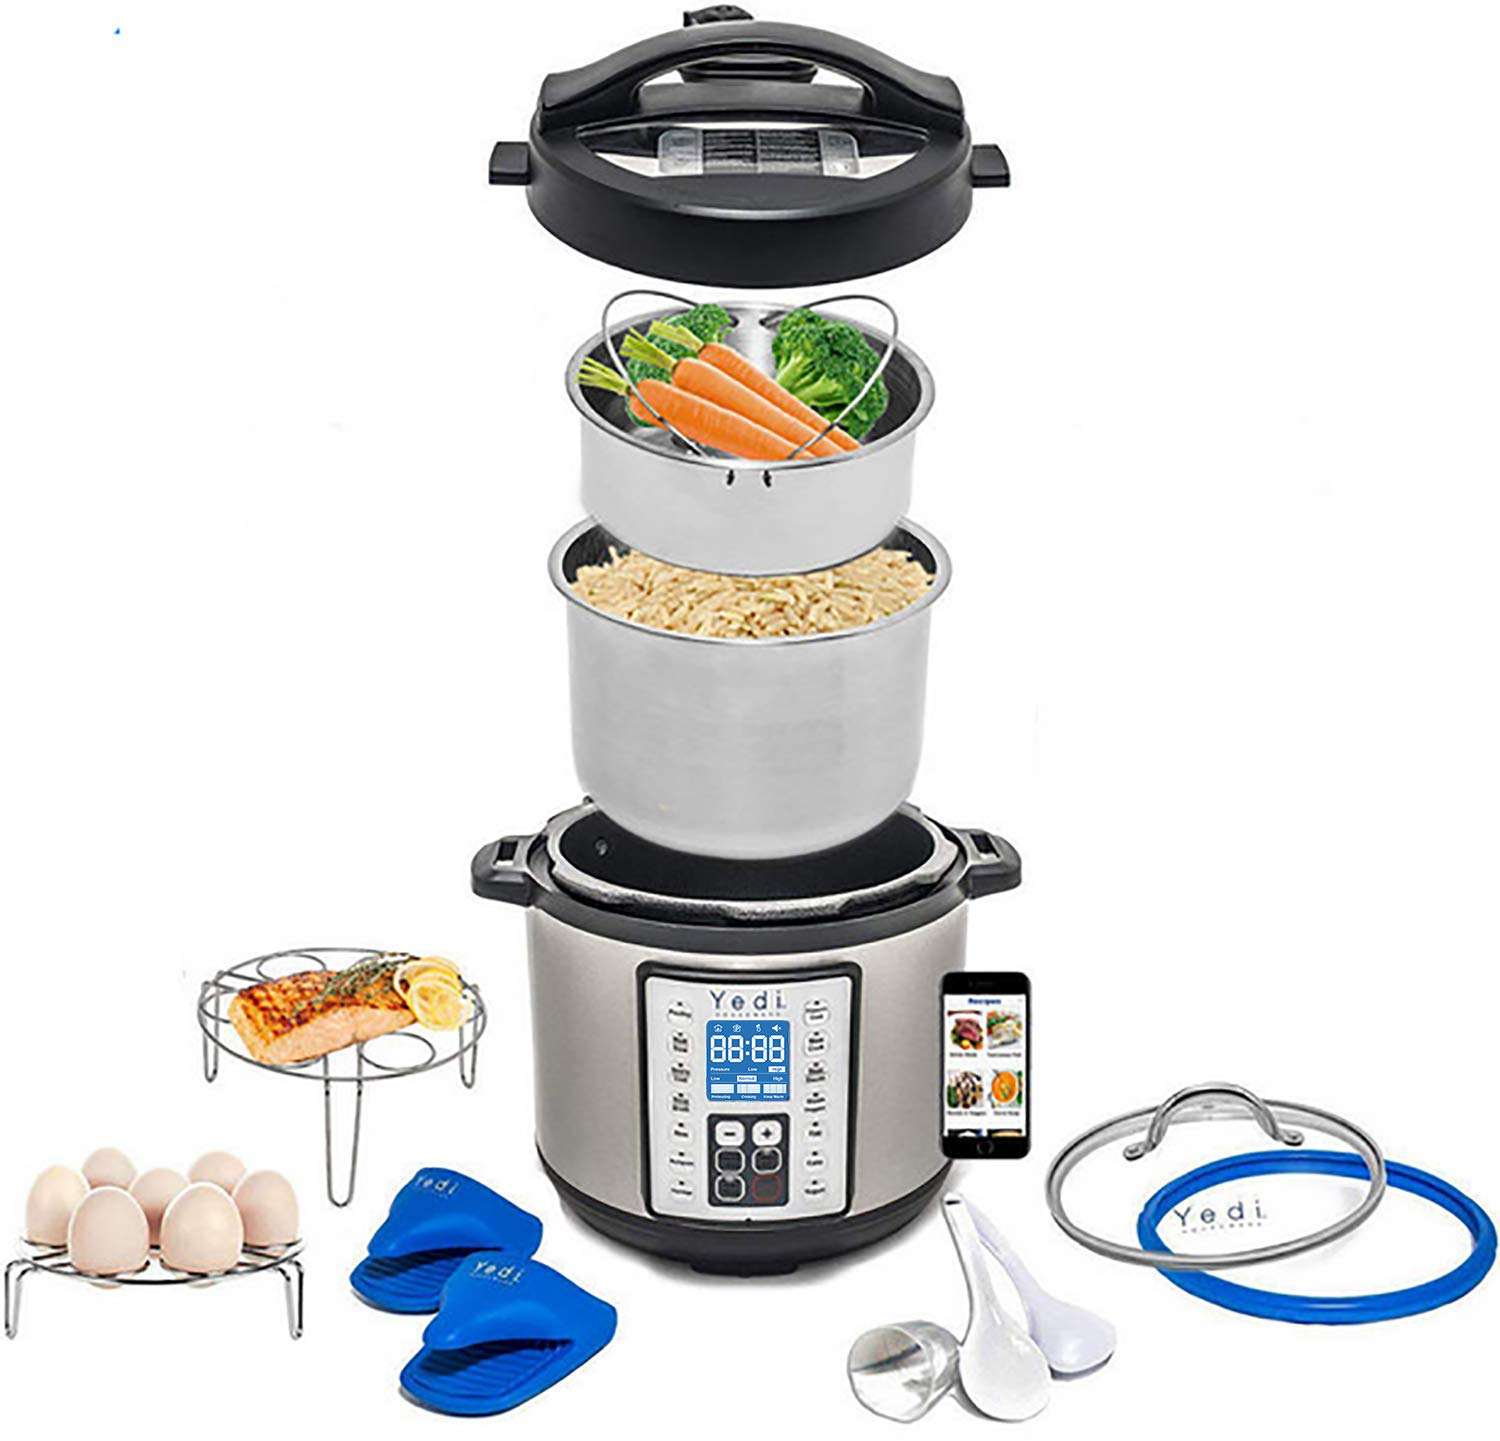 Total Package 9-in-1 Instant Multi-Use Programmable Pressure Cooker, Deluxe Accessory Kit & Recipes. Pressure Cook, Slow Cook, Sauté, Egg, Rice Cooker, Yogurt, Steamer, Hot Pot by Yedi Houseware (6Qt) by Yedi Houseware (Image #1)